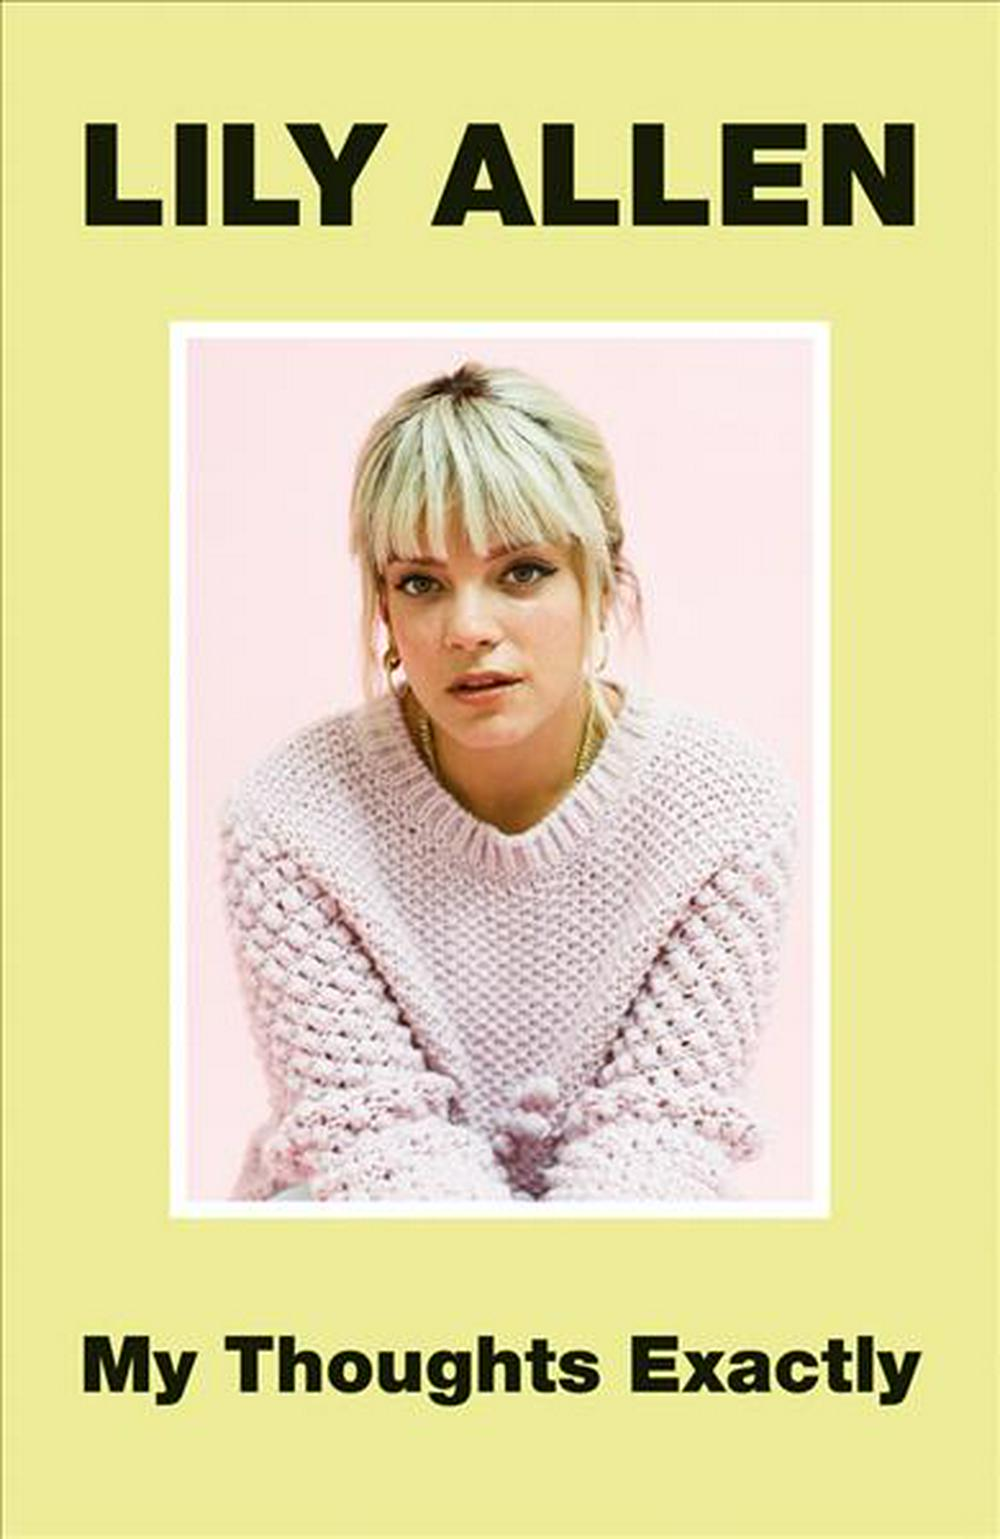 My Thoughts Exactly by Lily Allen, ISBN: 9781911600909